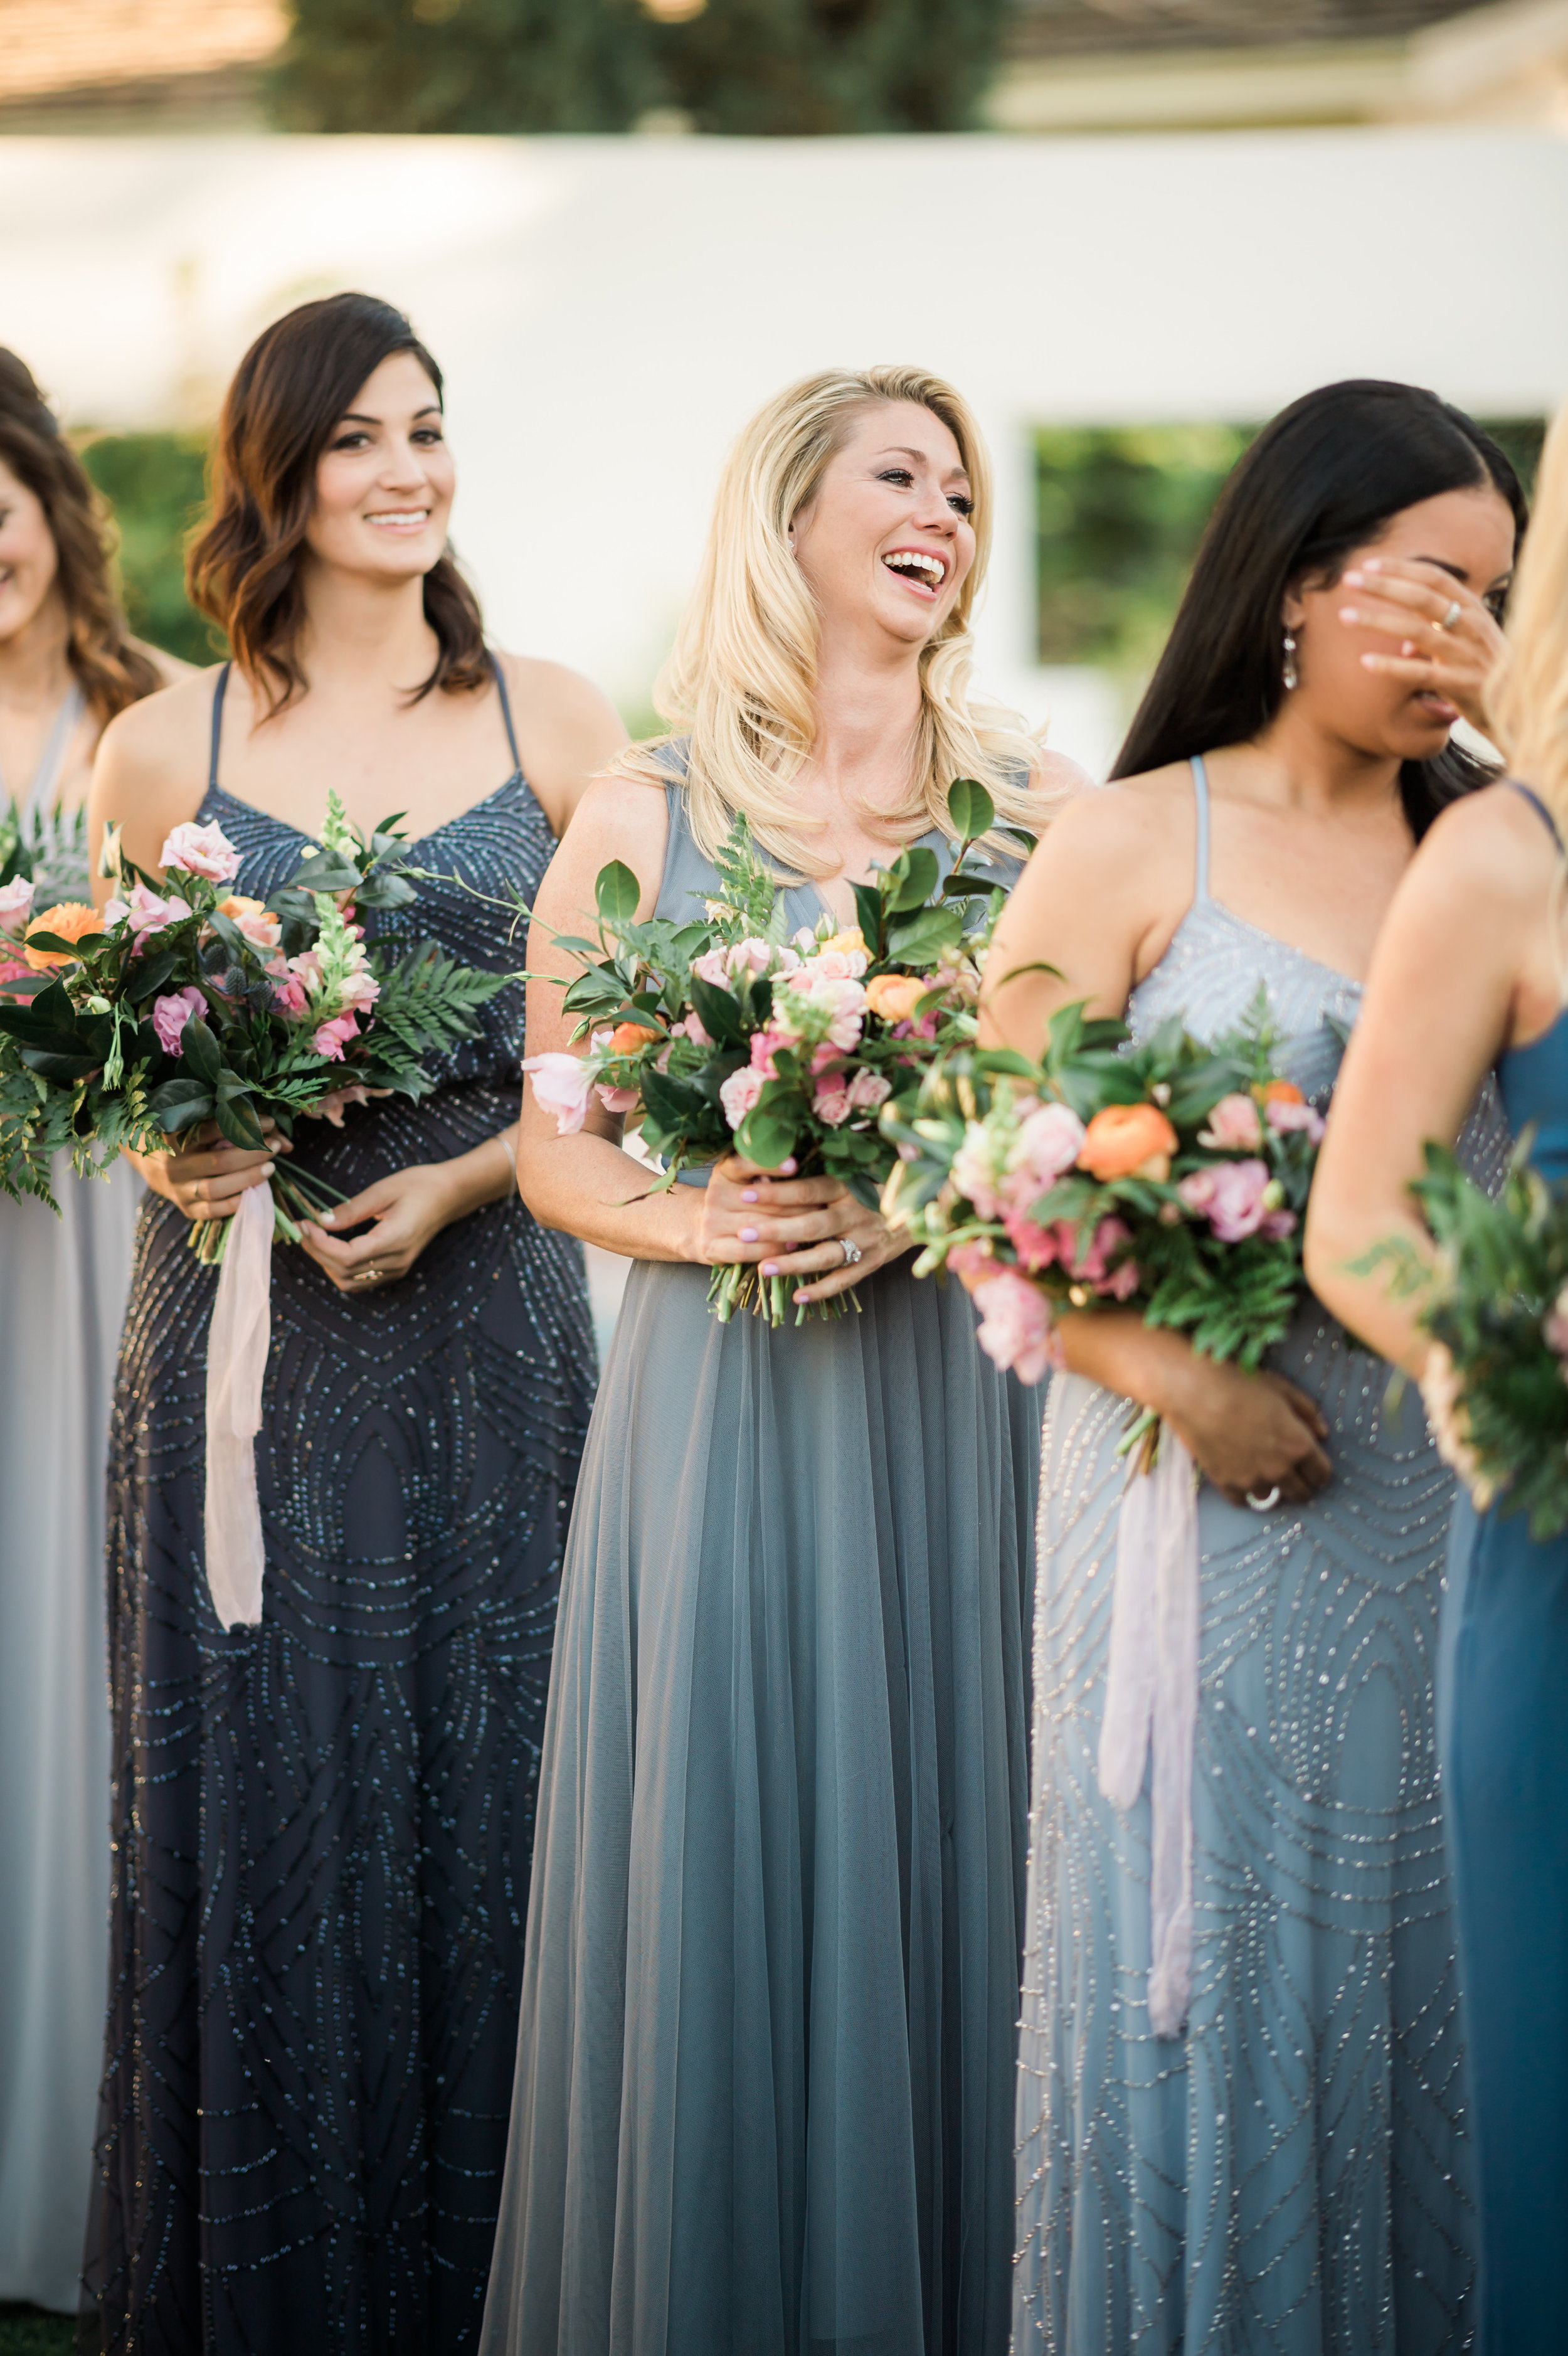 Private Estate Wedding in Phoenix - Bridesmaids in Shades of Blue Dresses